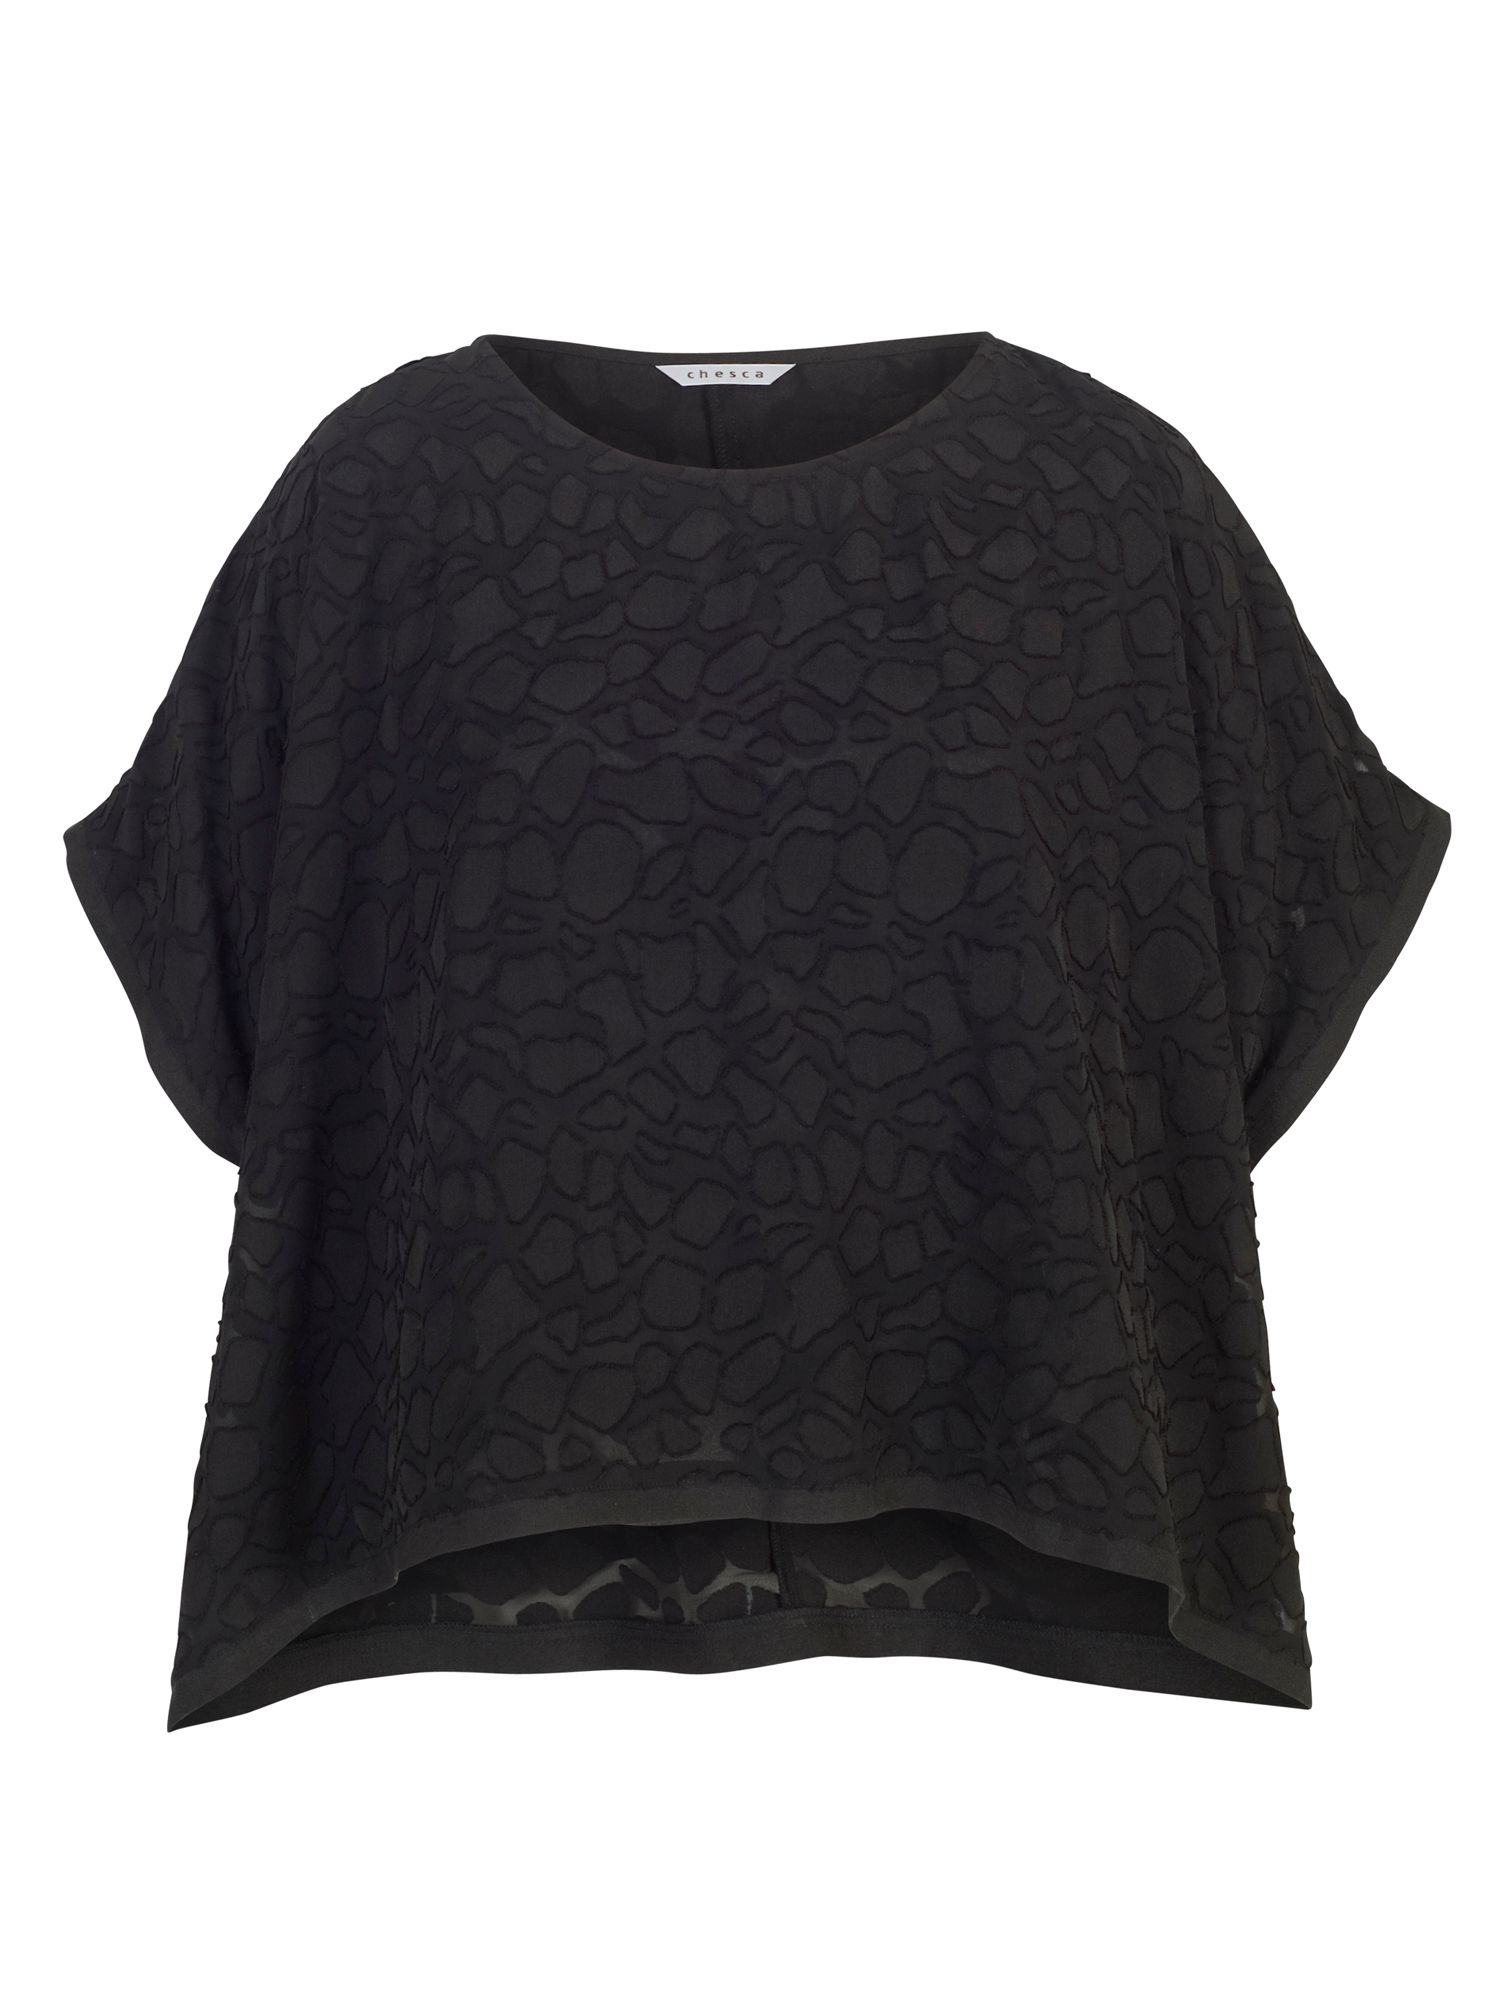 Chesca Pebble Burnout Top, Black